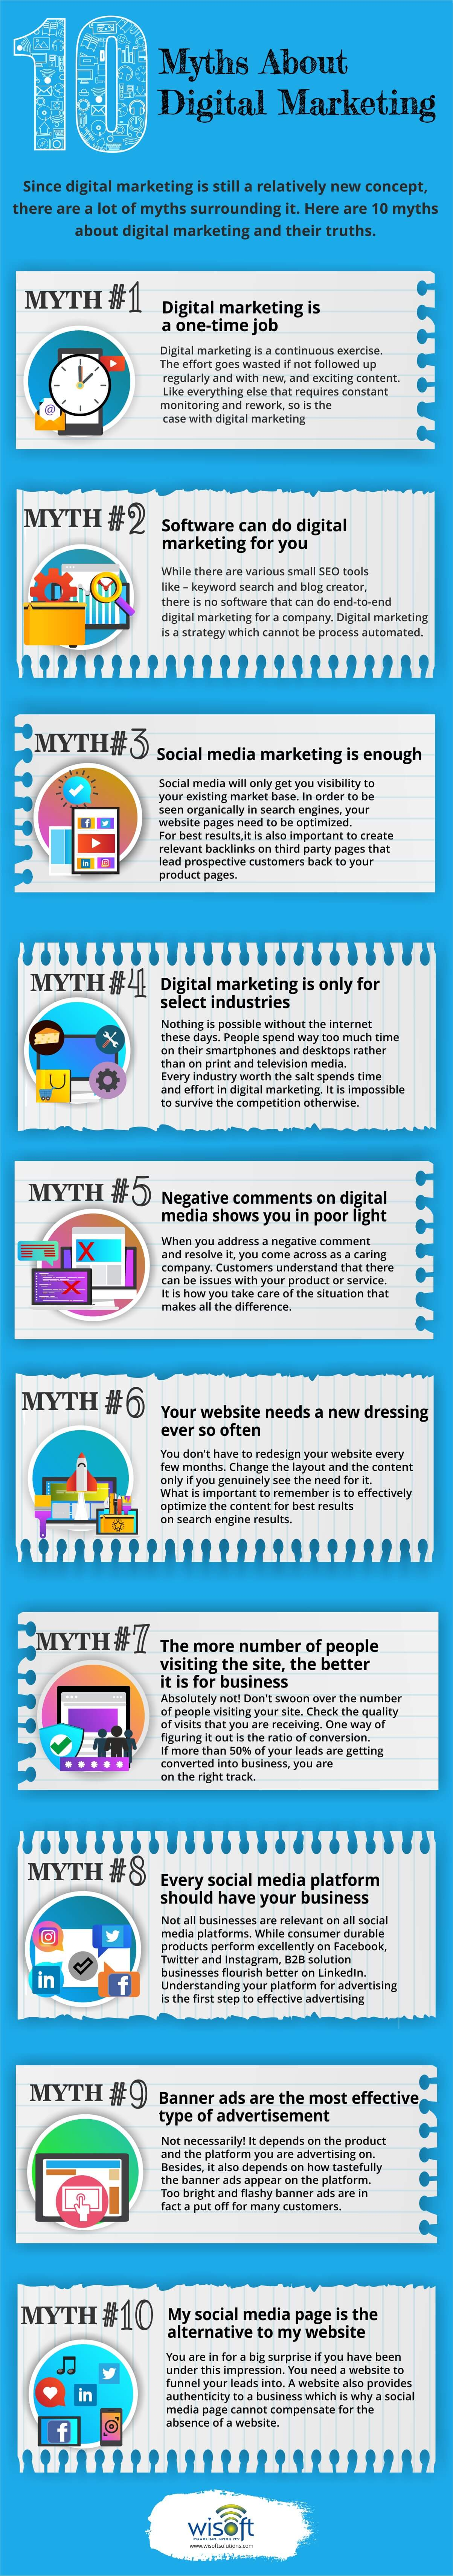 10-myths-digital-marketing-infographic-plaza